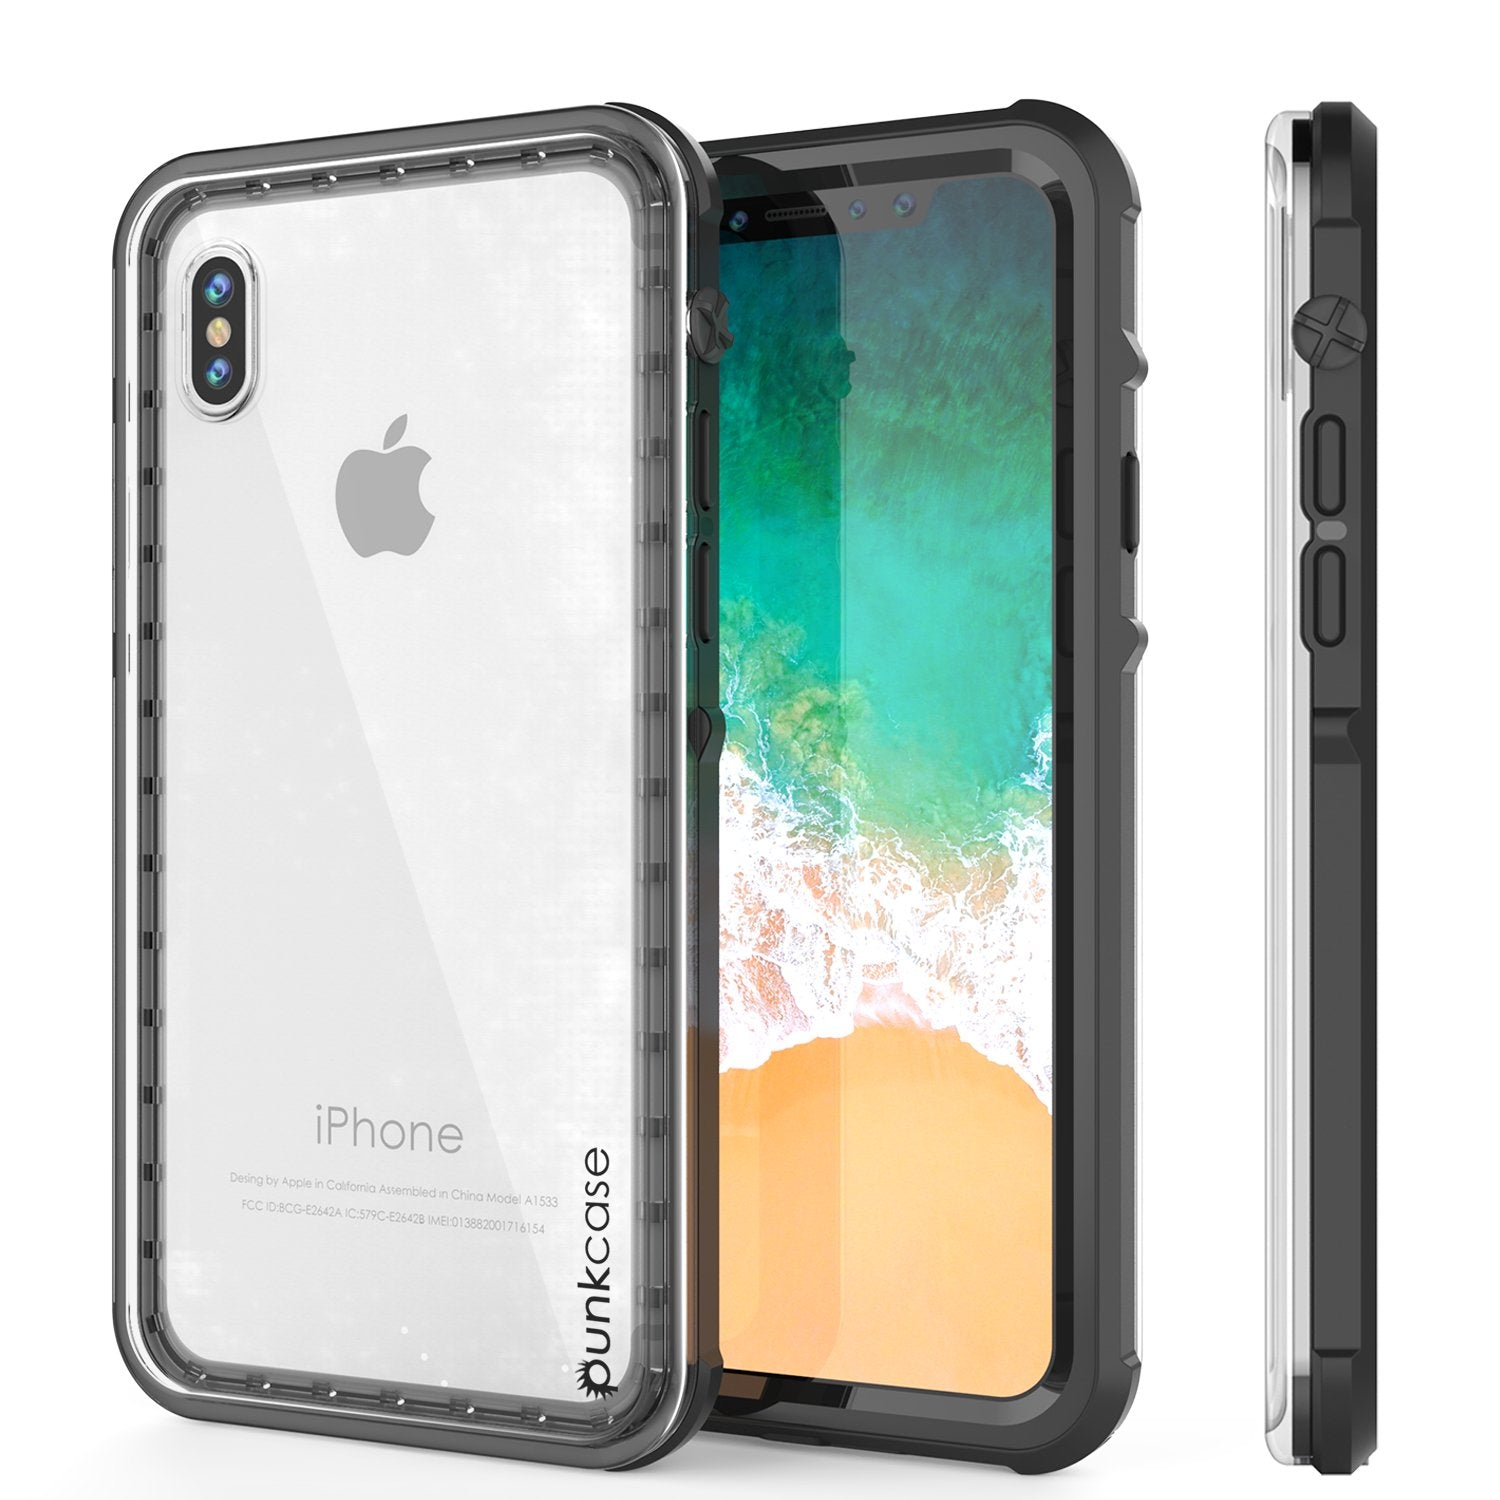 iPhone XS Case, PUNKCase [CRYSTAL SERIES] Protective IP68 Certified Cover [BLACK]